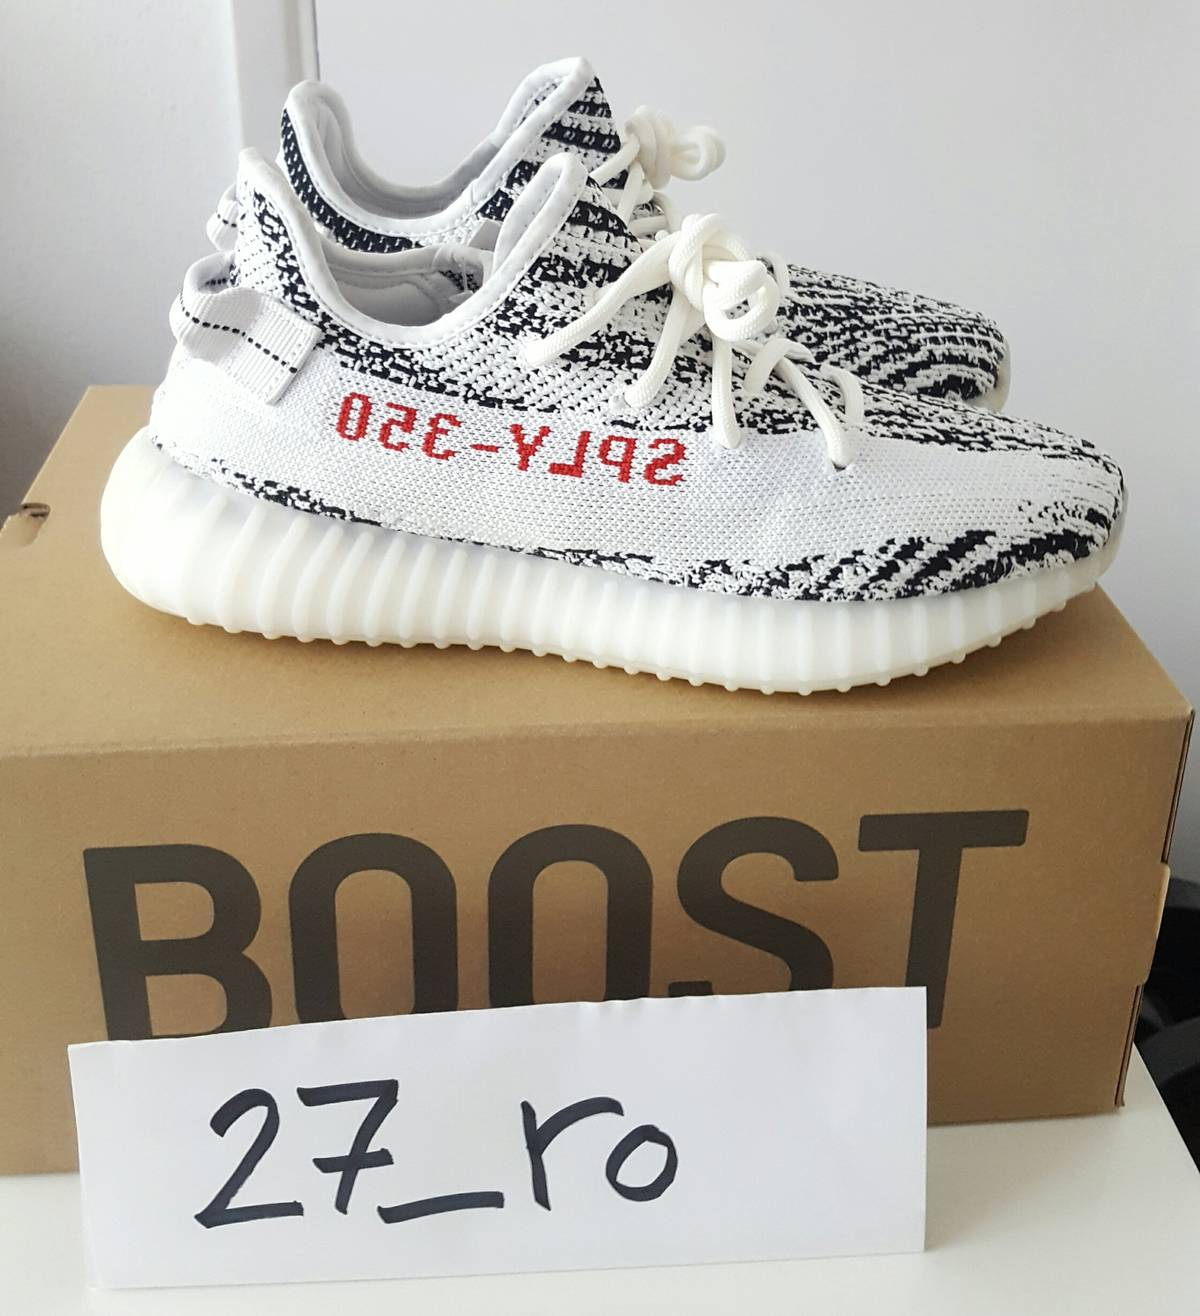 adidas Yeezy Boost 350 V2 Cream White Size 9.5